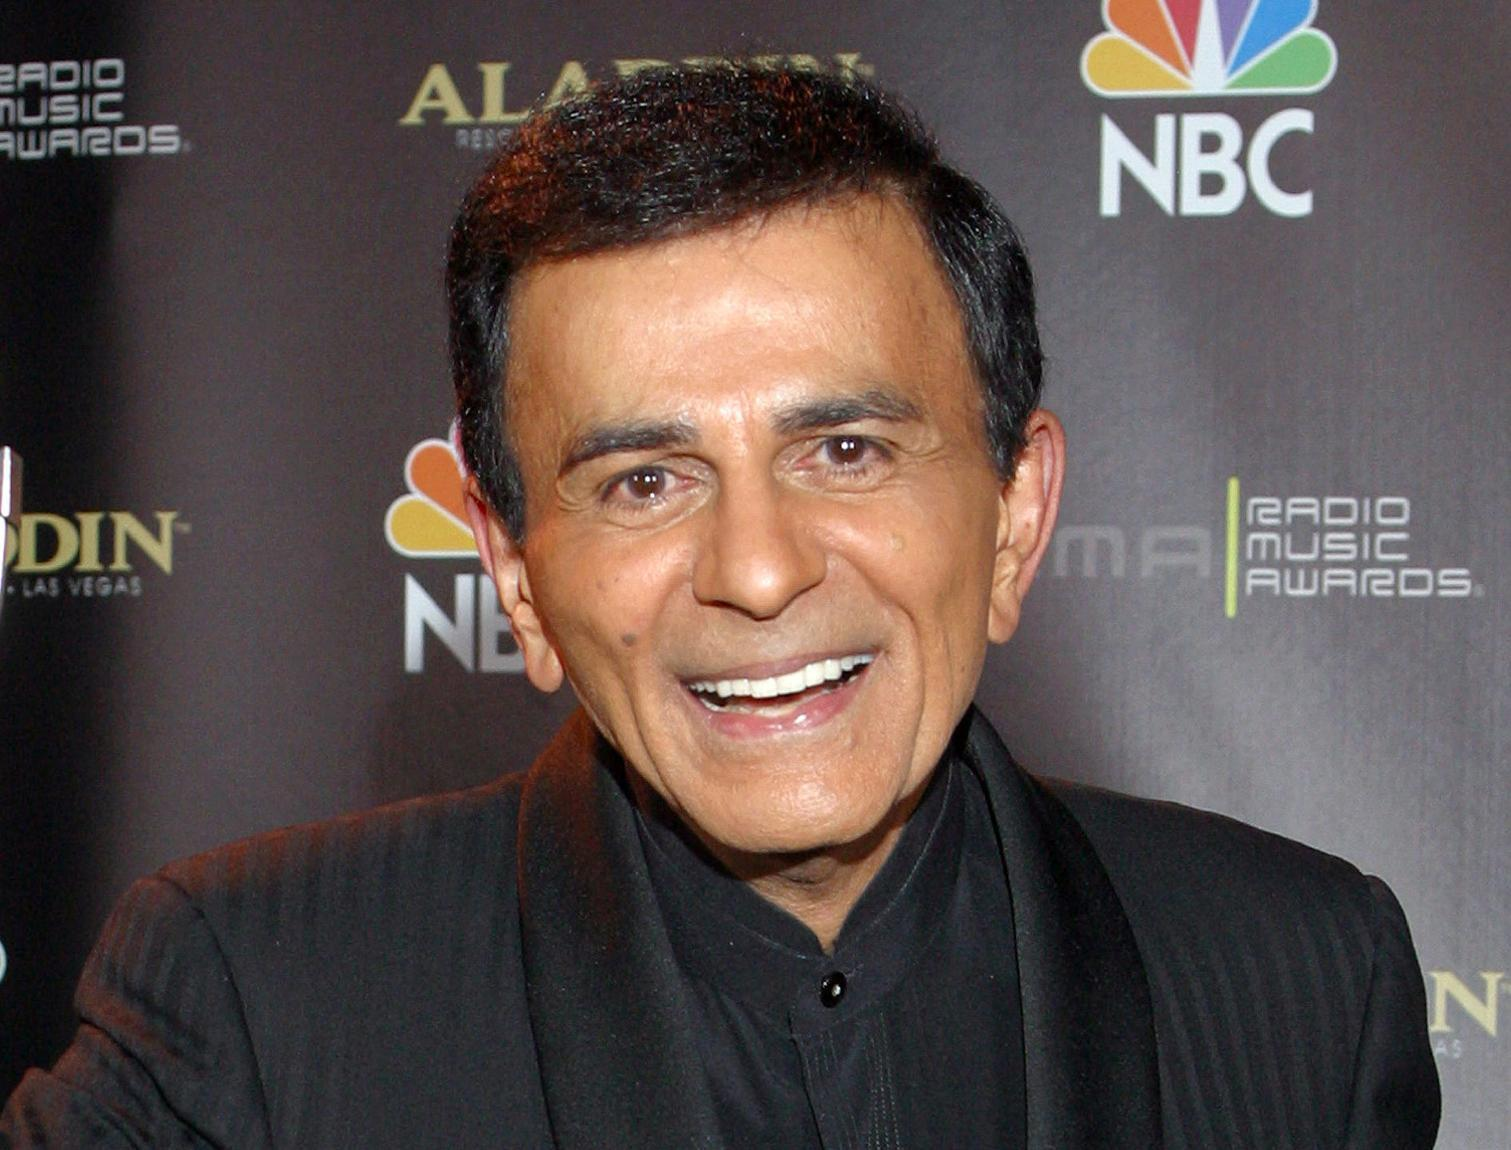 APNewsBreak: Casey Kasem's widow sued for wrongful death